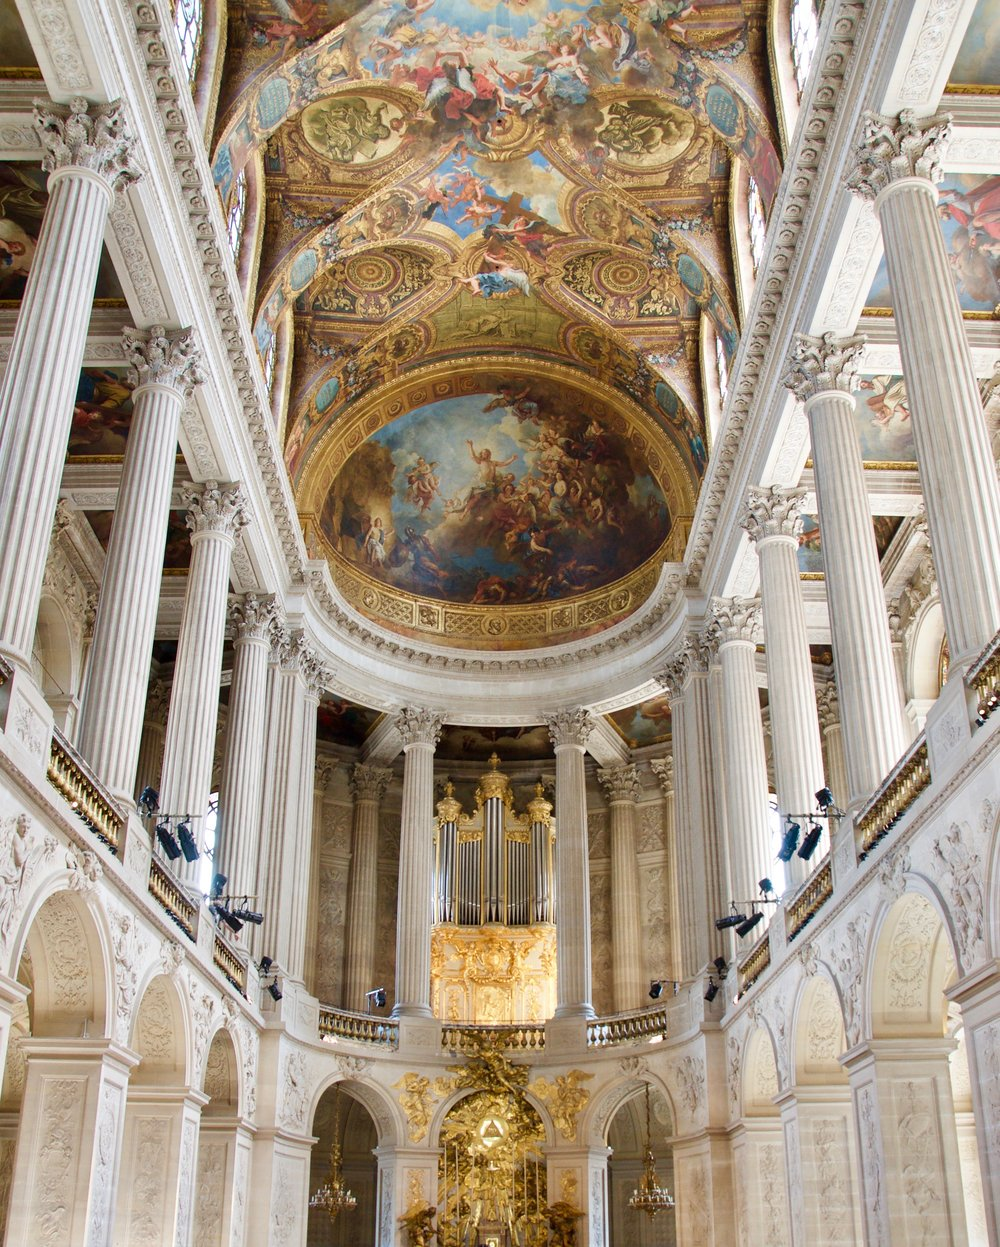 La Chapelle Royale in Versailles - an organ fit for a king!